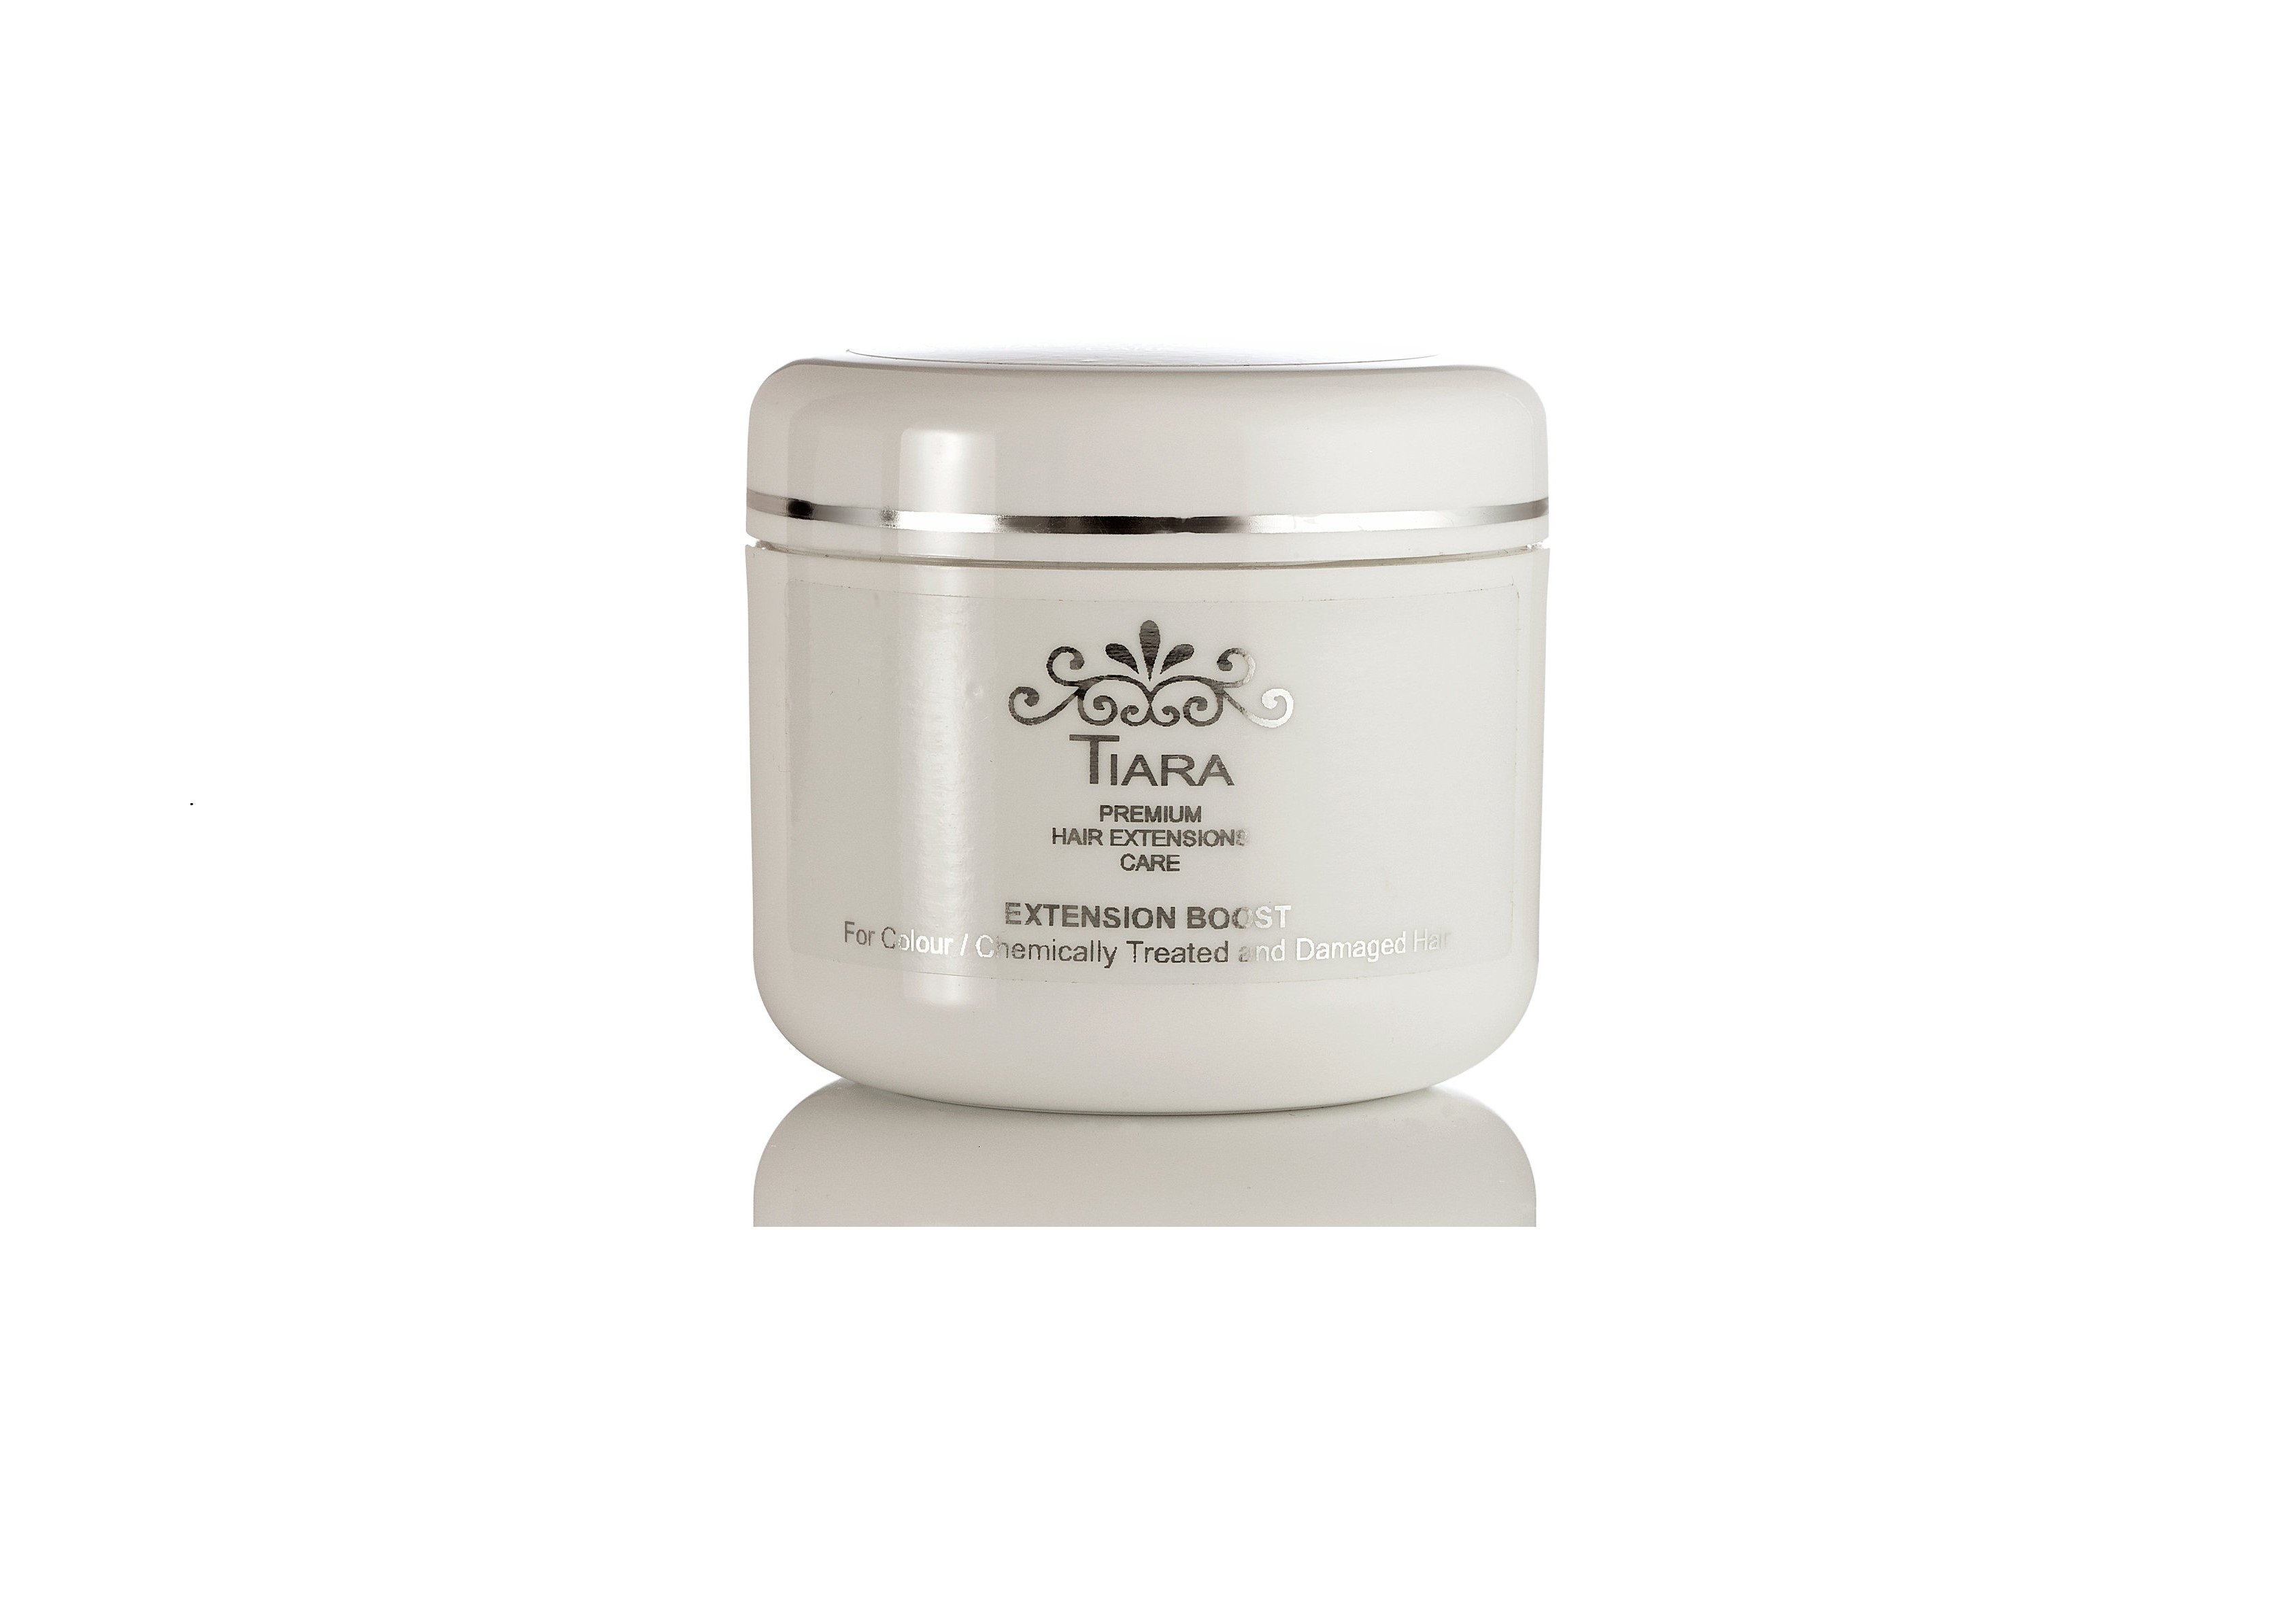 Tiara Extensions Boost 100ml Tiara London